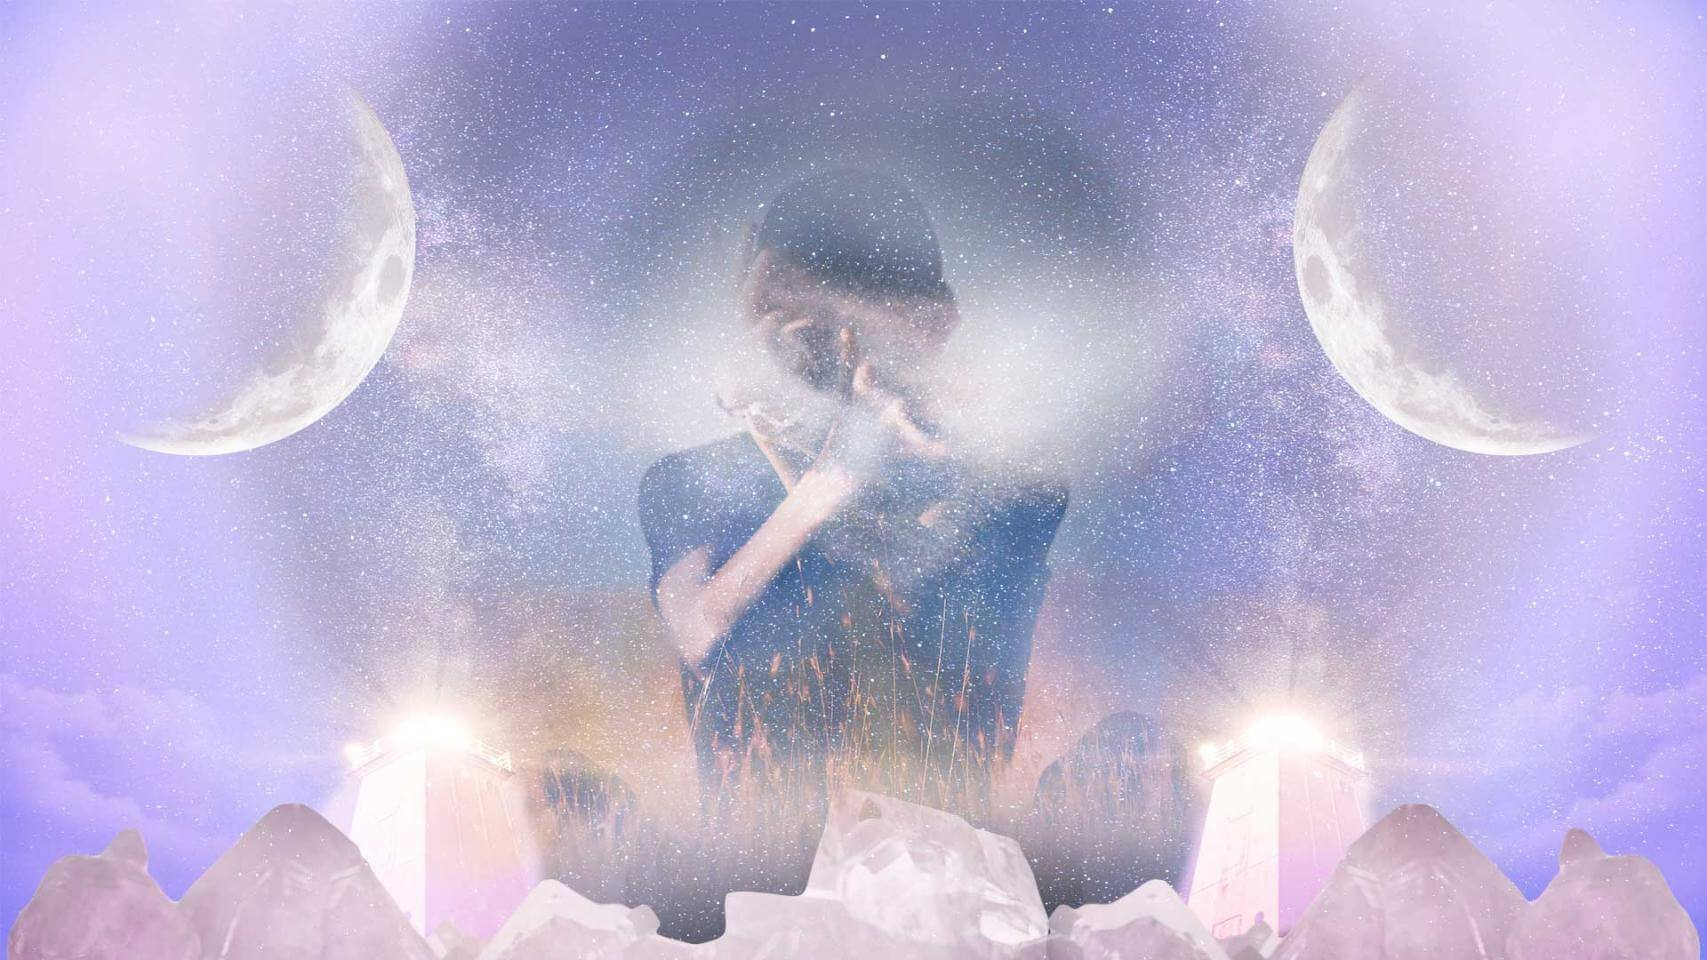 A boy with no face and his finger to his mouth, crystals, towers, two moons, stars and the beams of light in the background